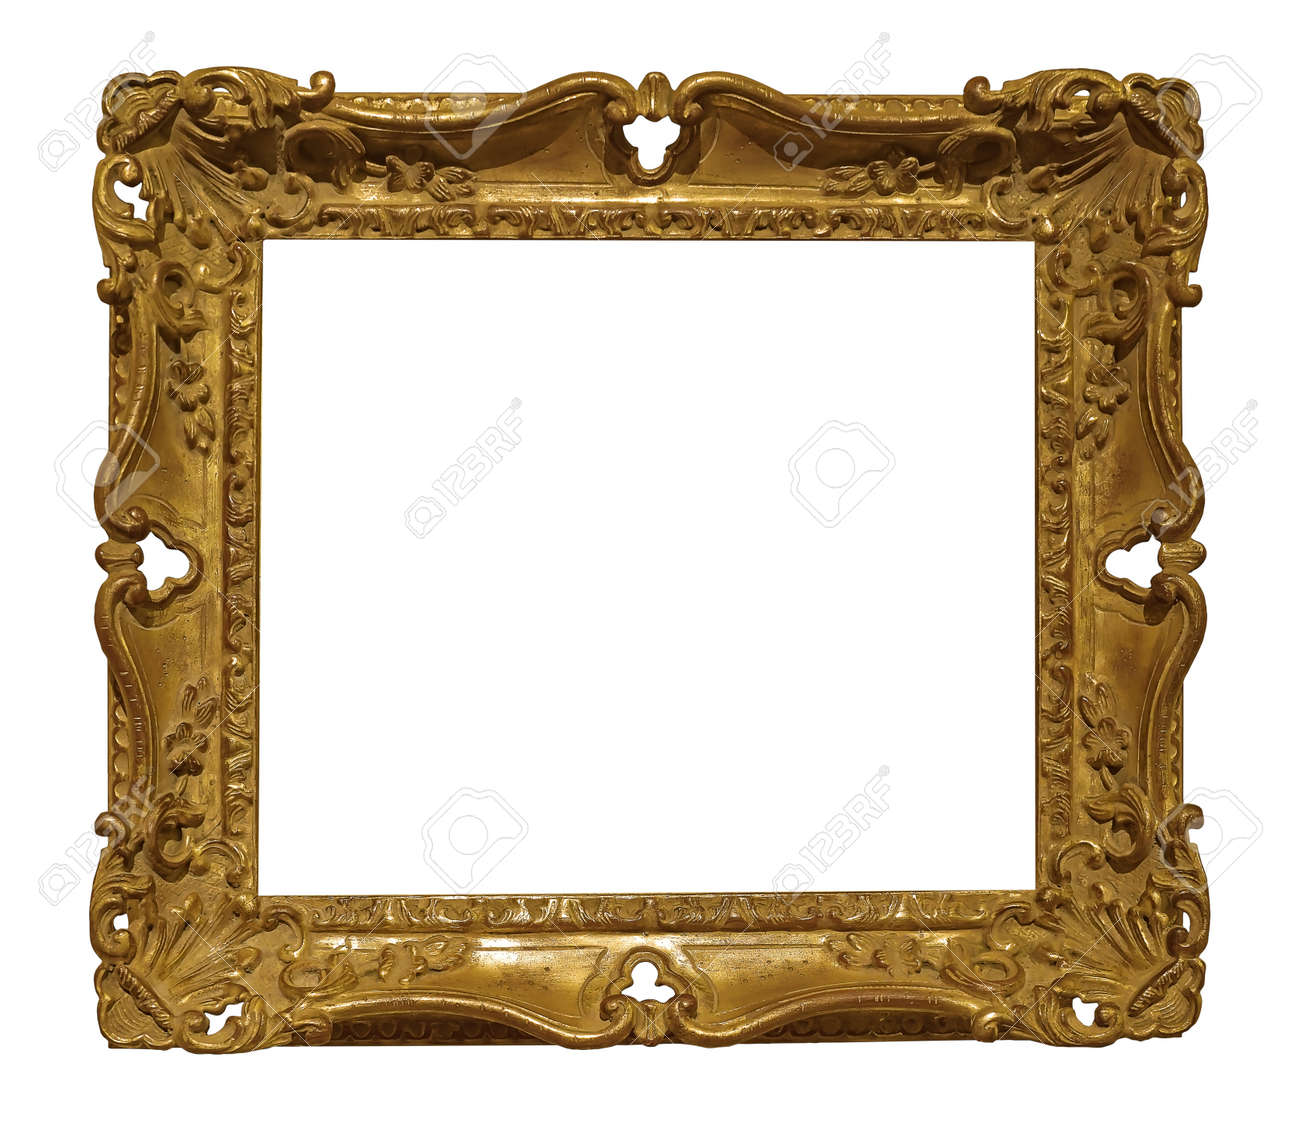 Golden frame for paintings, mirrors or photo isolated on white background. - 156567758